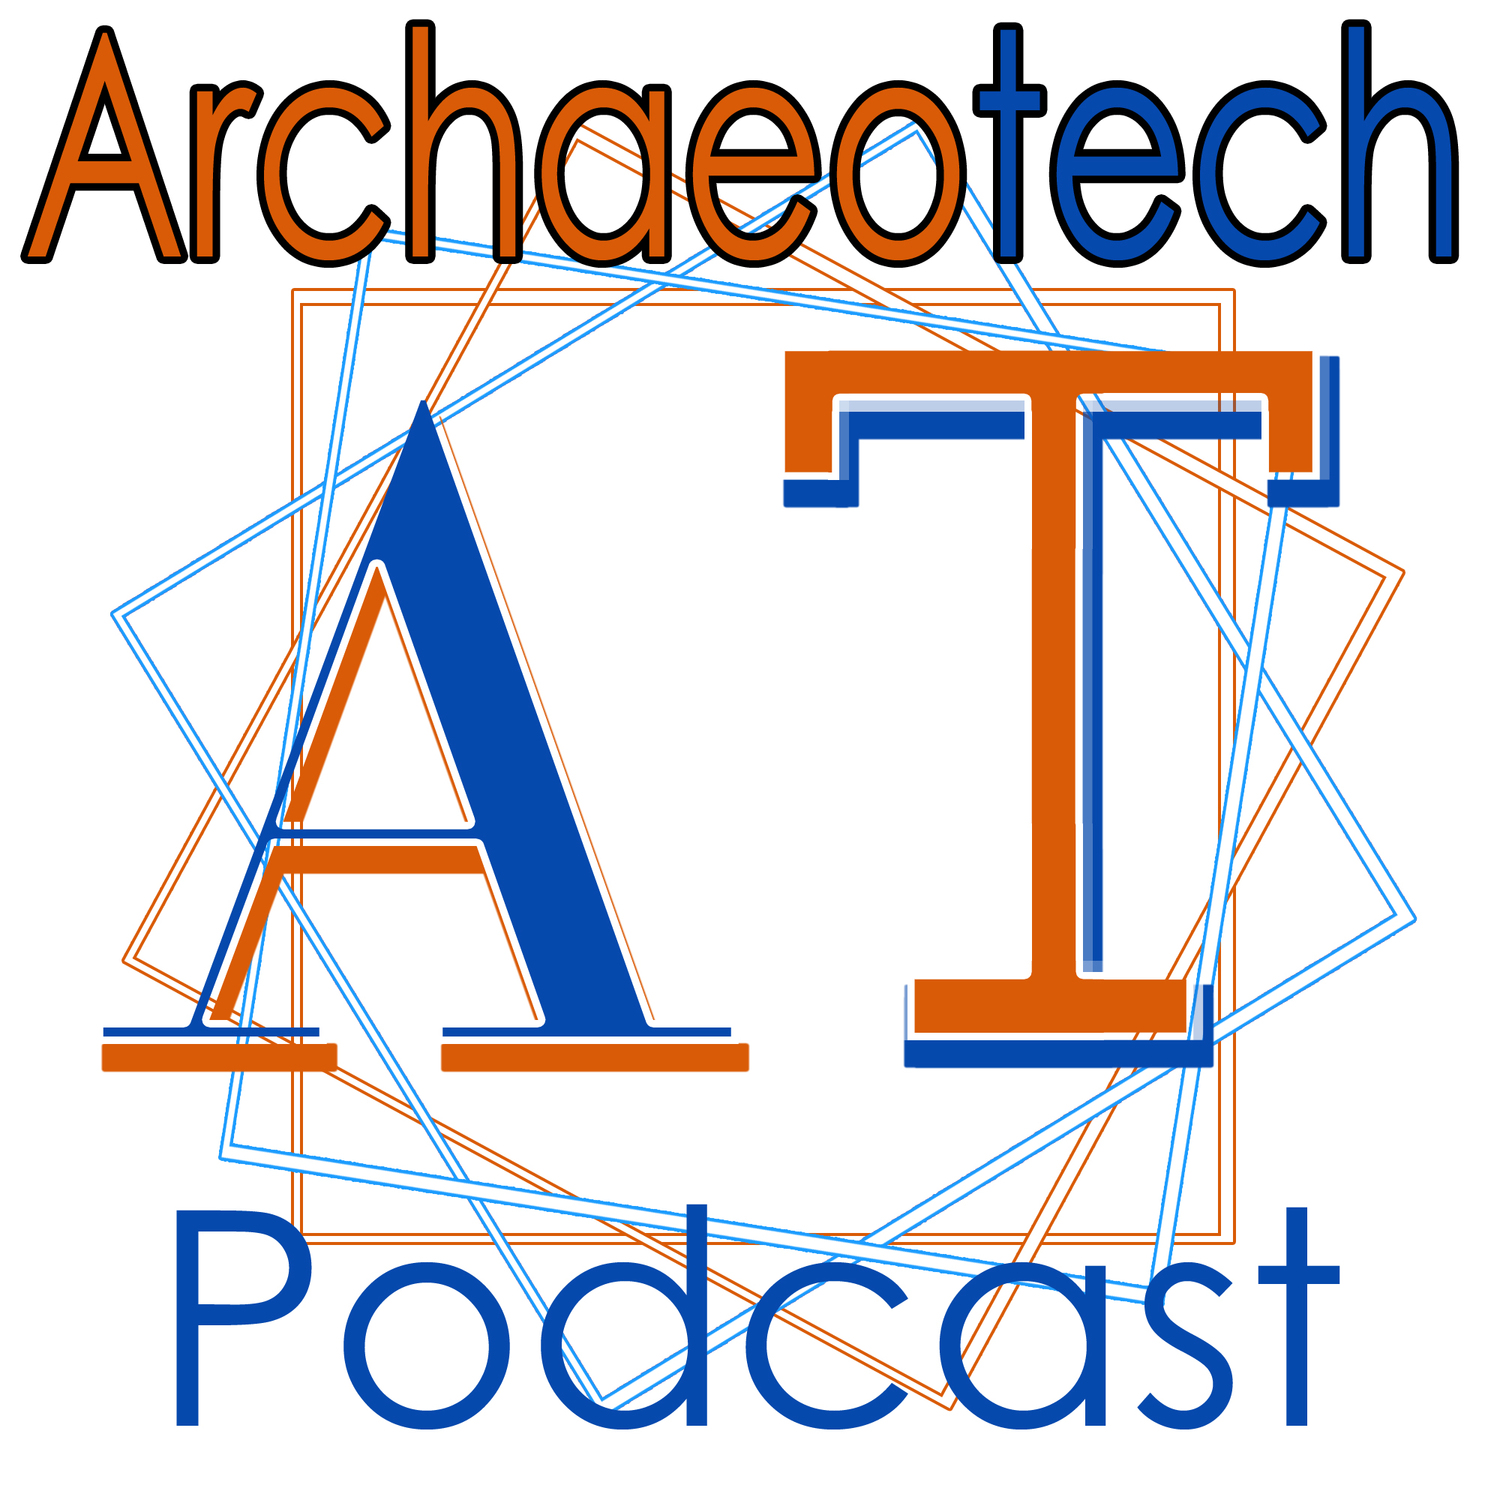 ArchaeoTech Podcast - Archaeology Podcast Network